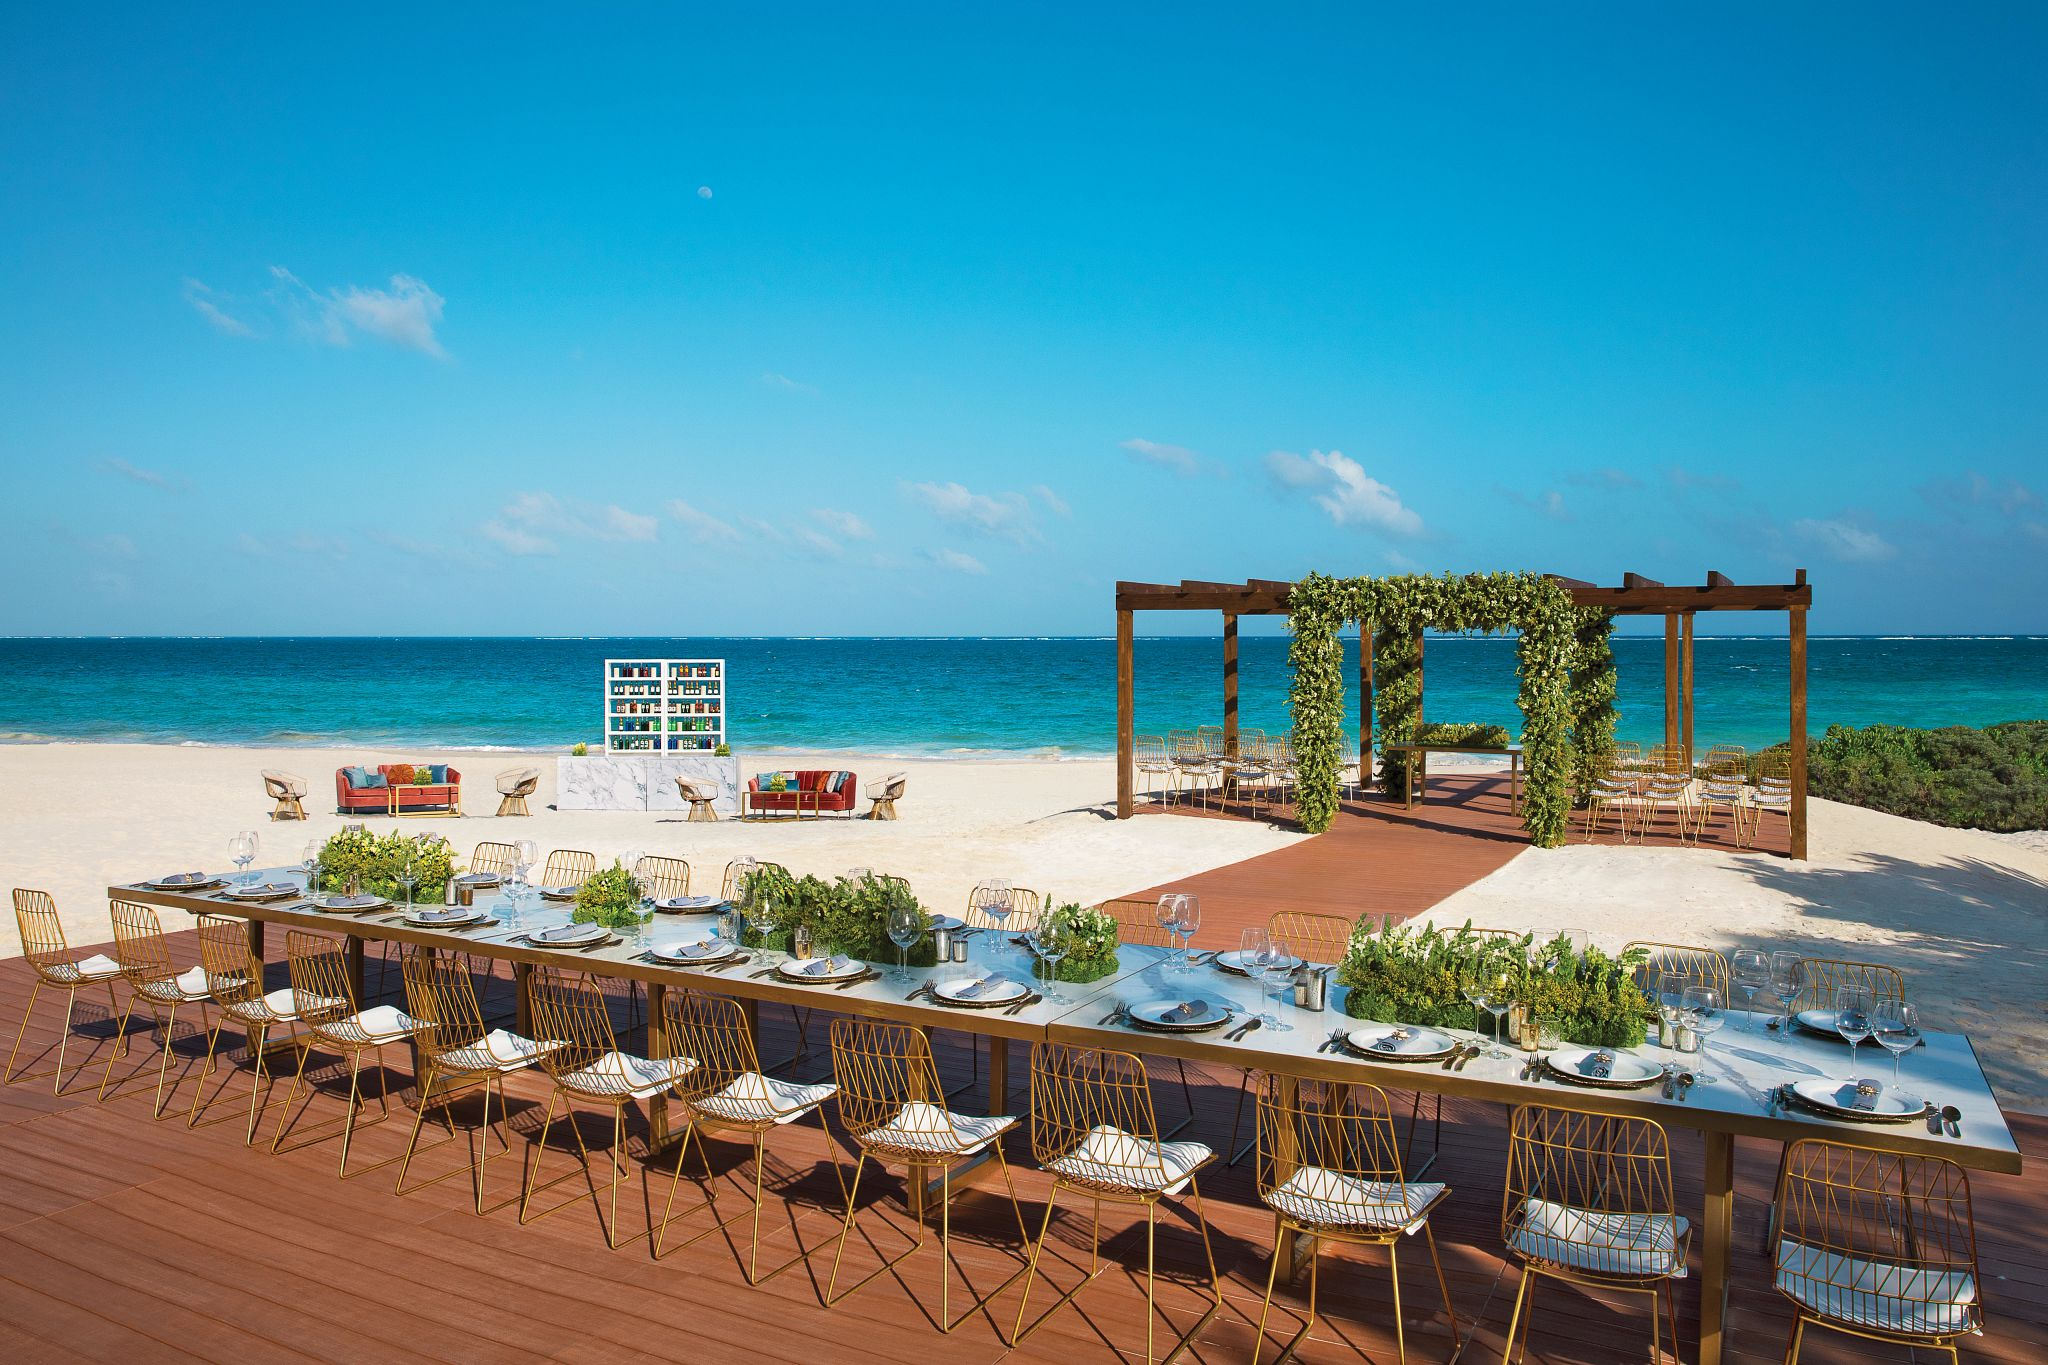 outdoor wedding terrace on the beach set up for a wedding reception